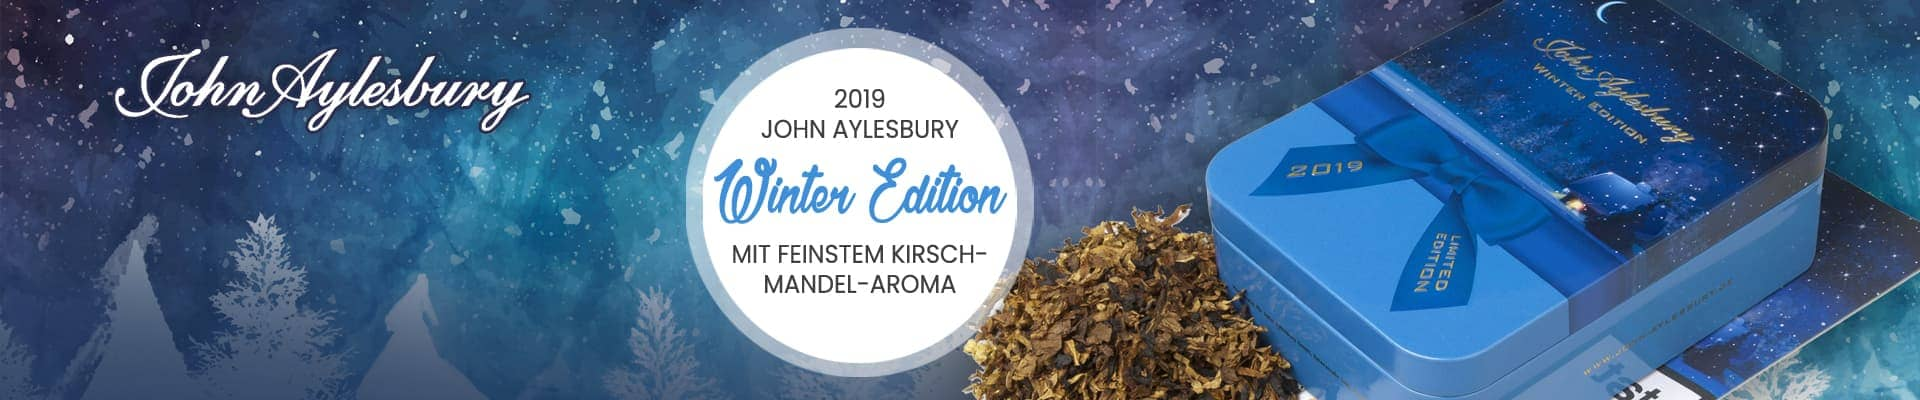 John Aylesbury Winter Edition